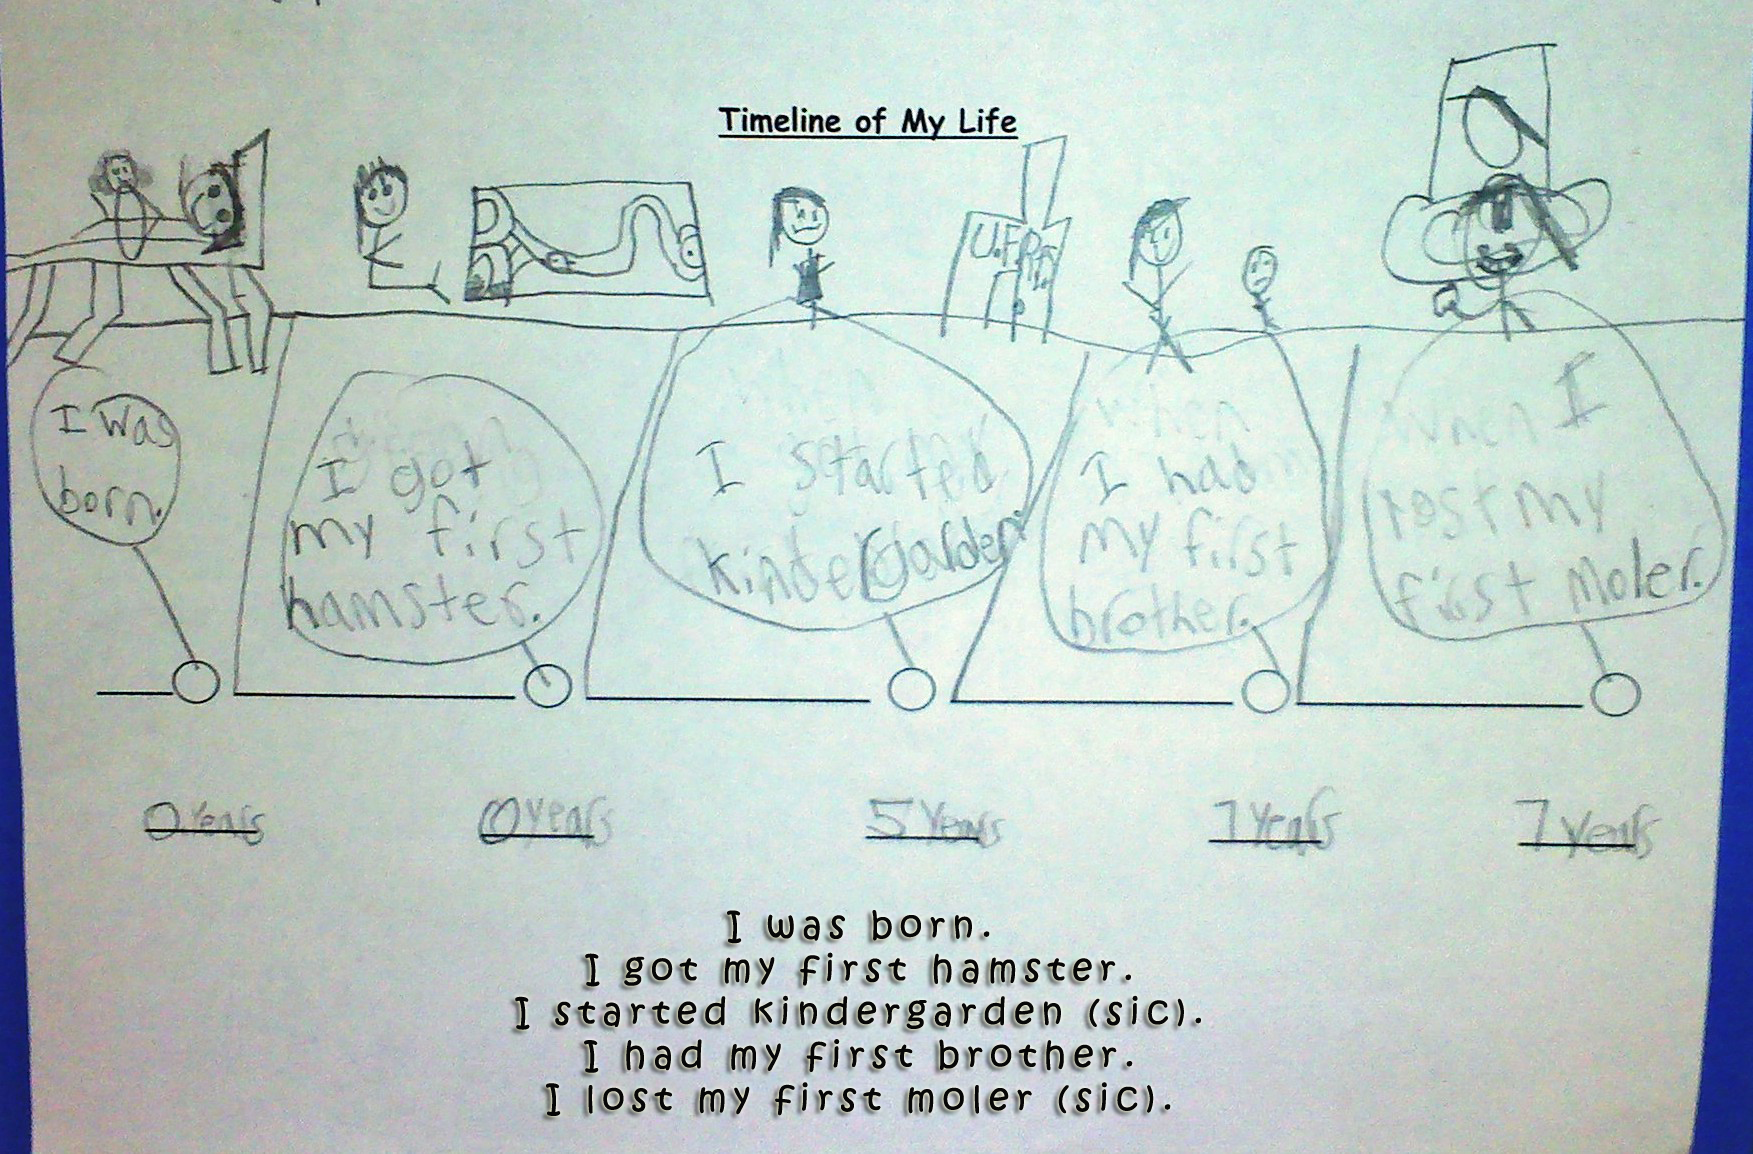 Timeline of a Kid's Life | Rightly Dividing the Word of Truth